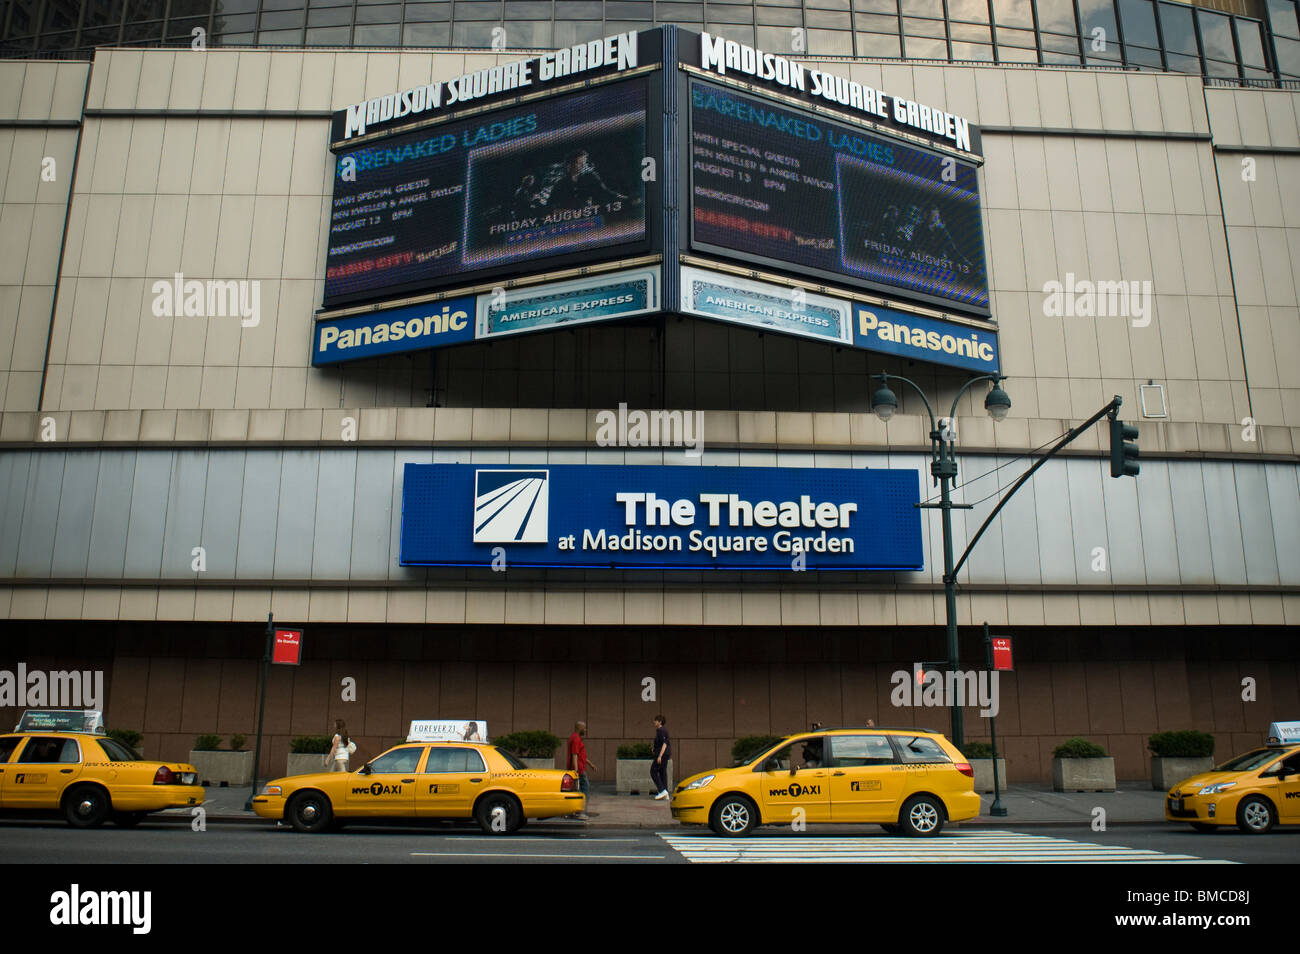 the theater in madison square garden formerly the wamu